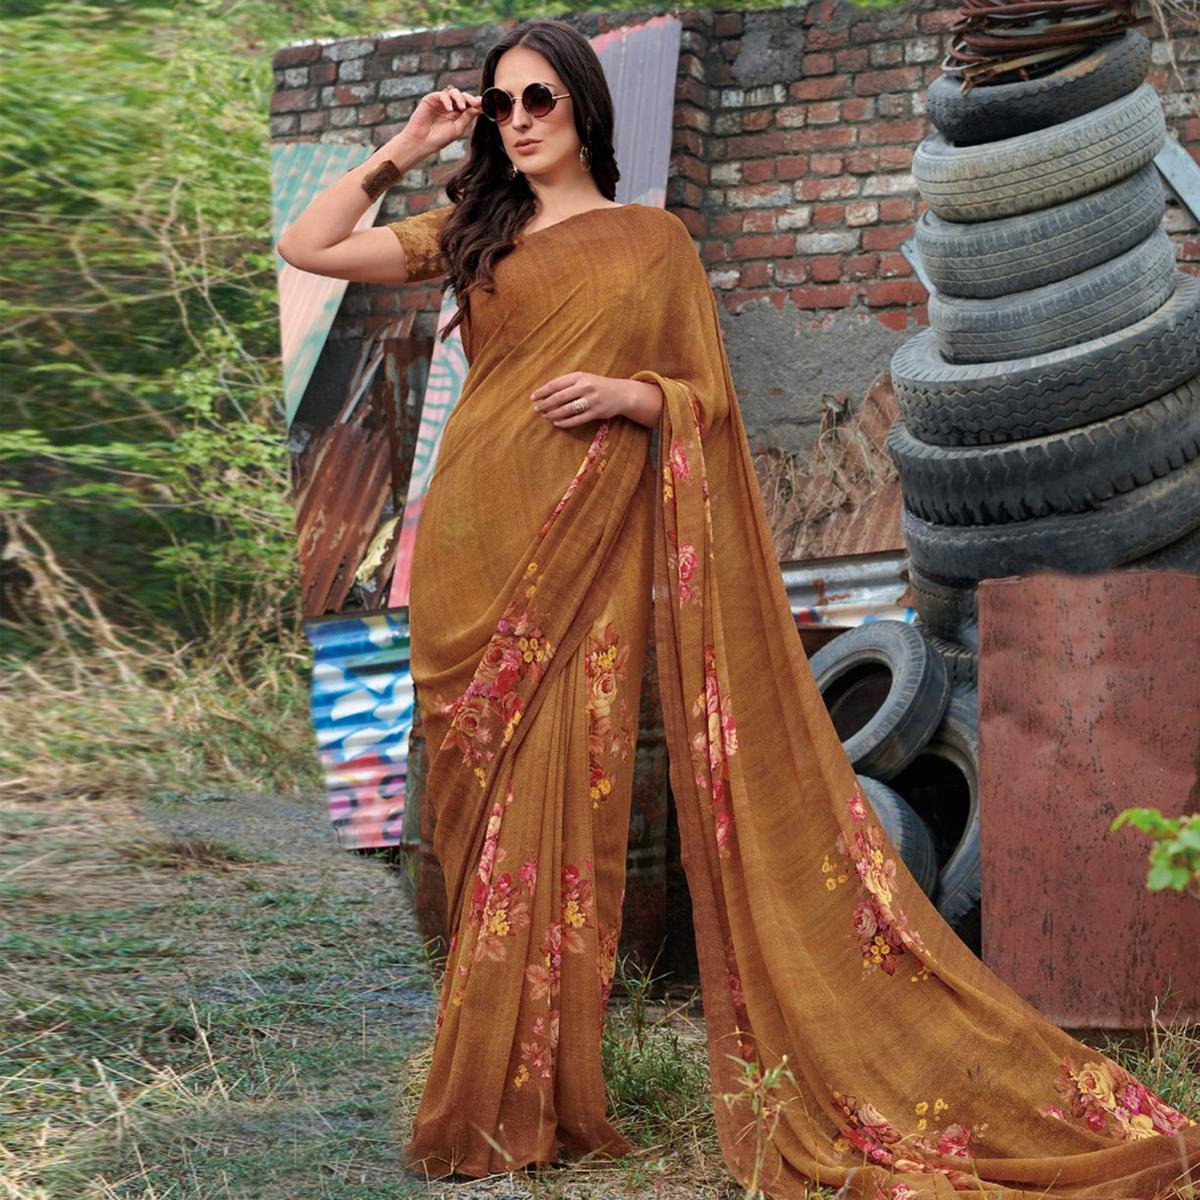 Dazzling Brown Colored Casual Wear Floral Printed Gerogette Saree